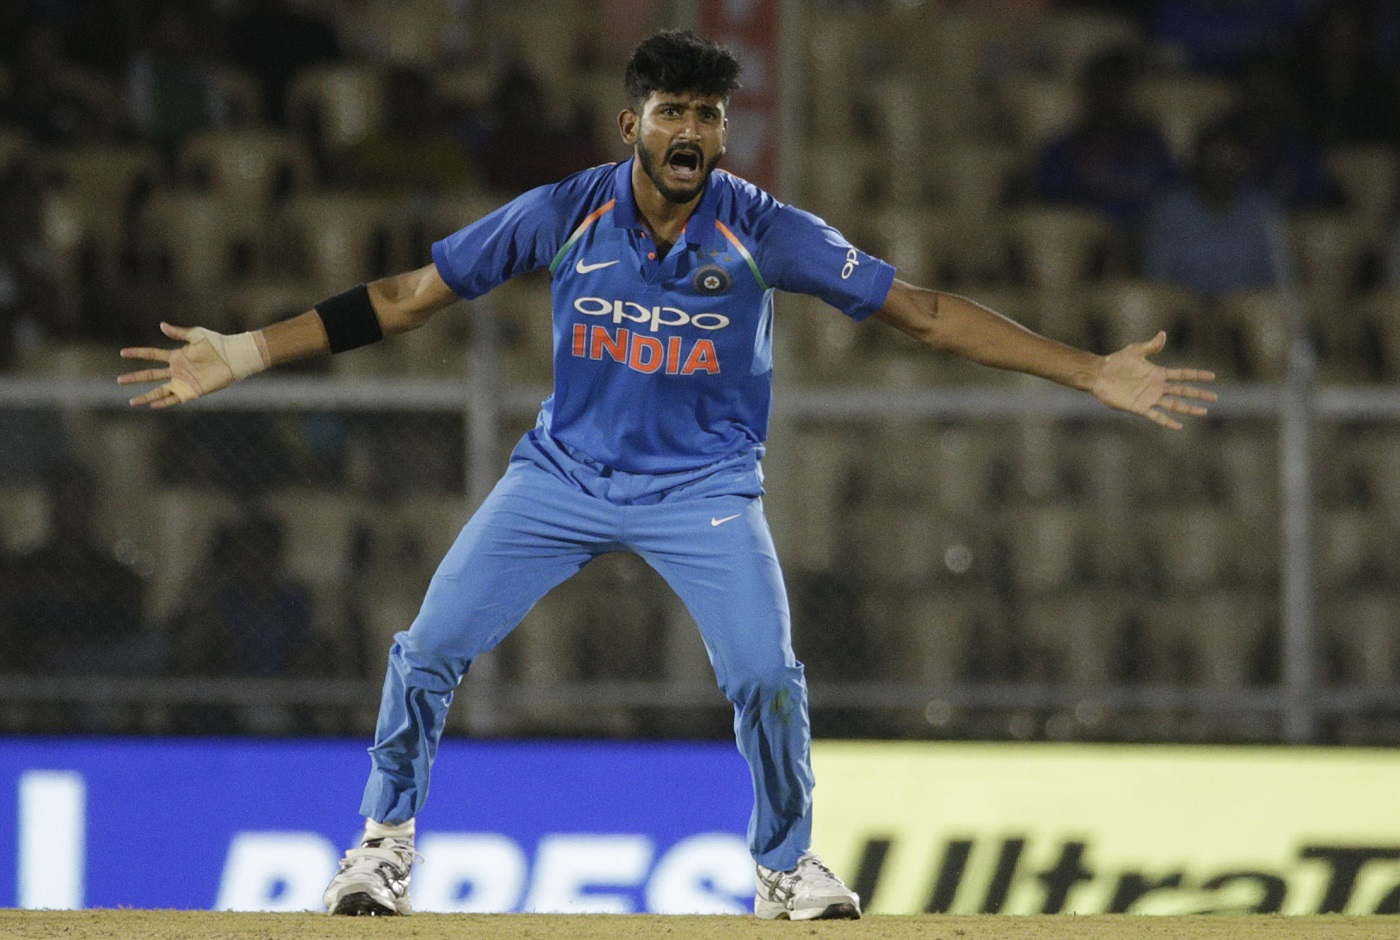 India vs Windies 2018: 4th ODI - Twitter Erupts as India Knocks Out Windies to Go 2-1 Up